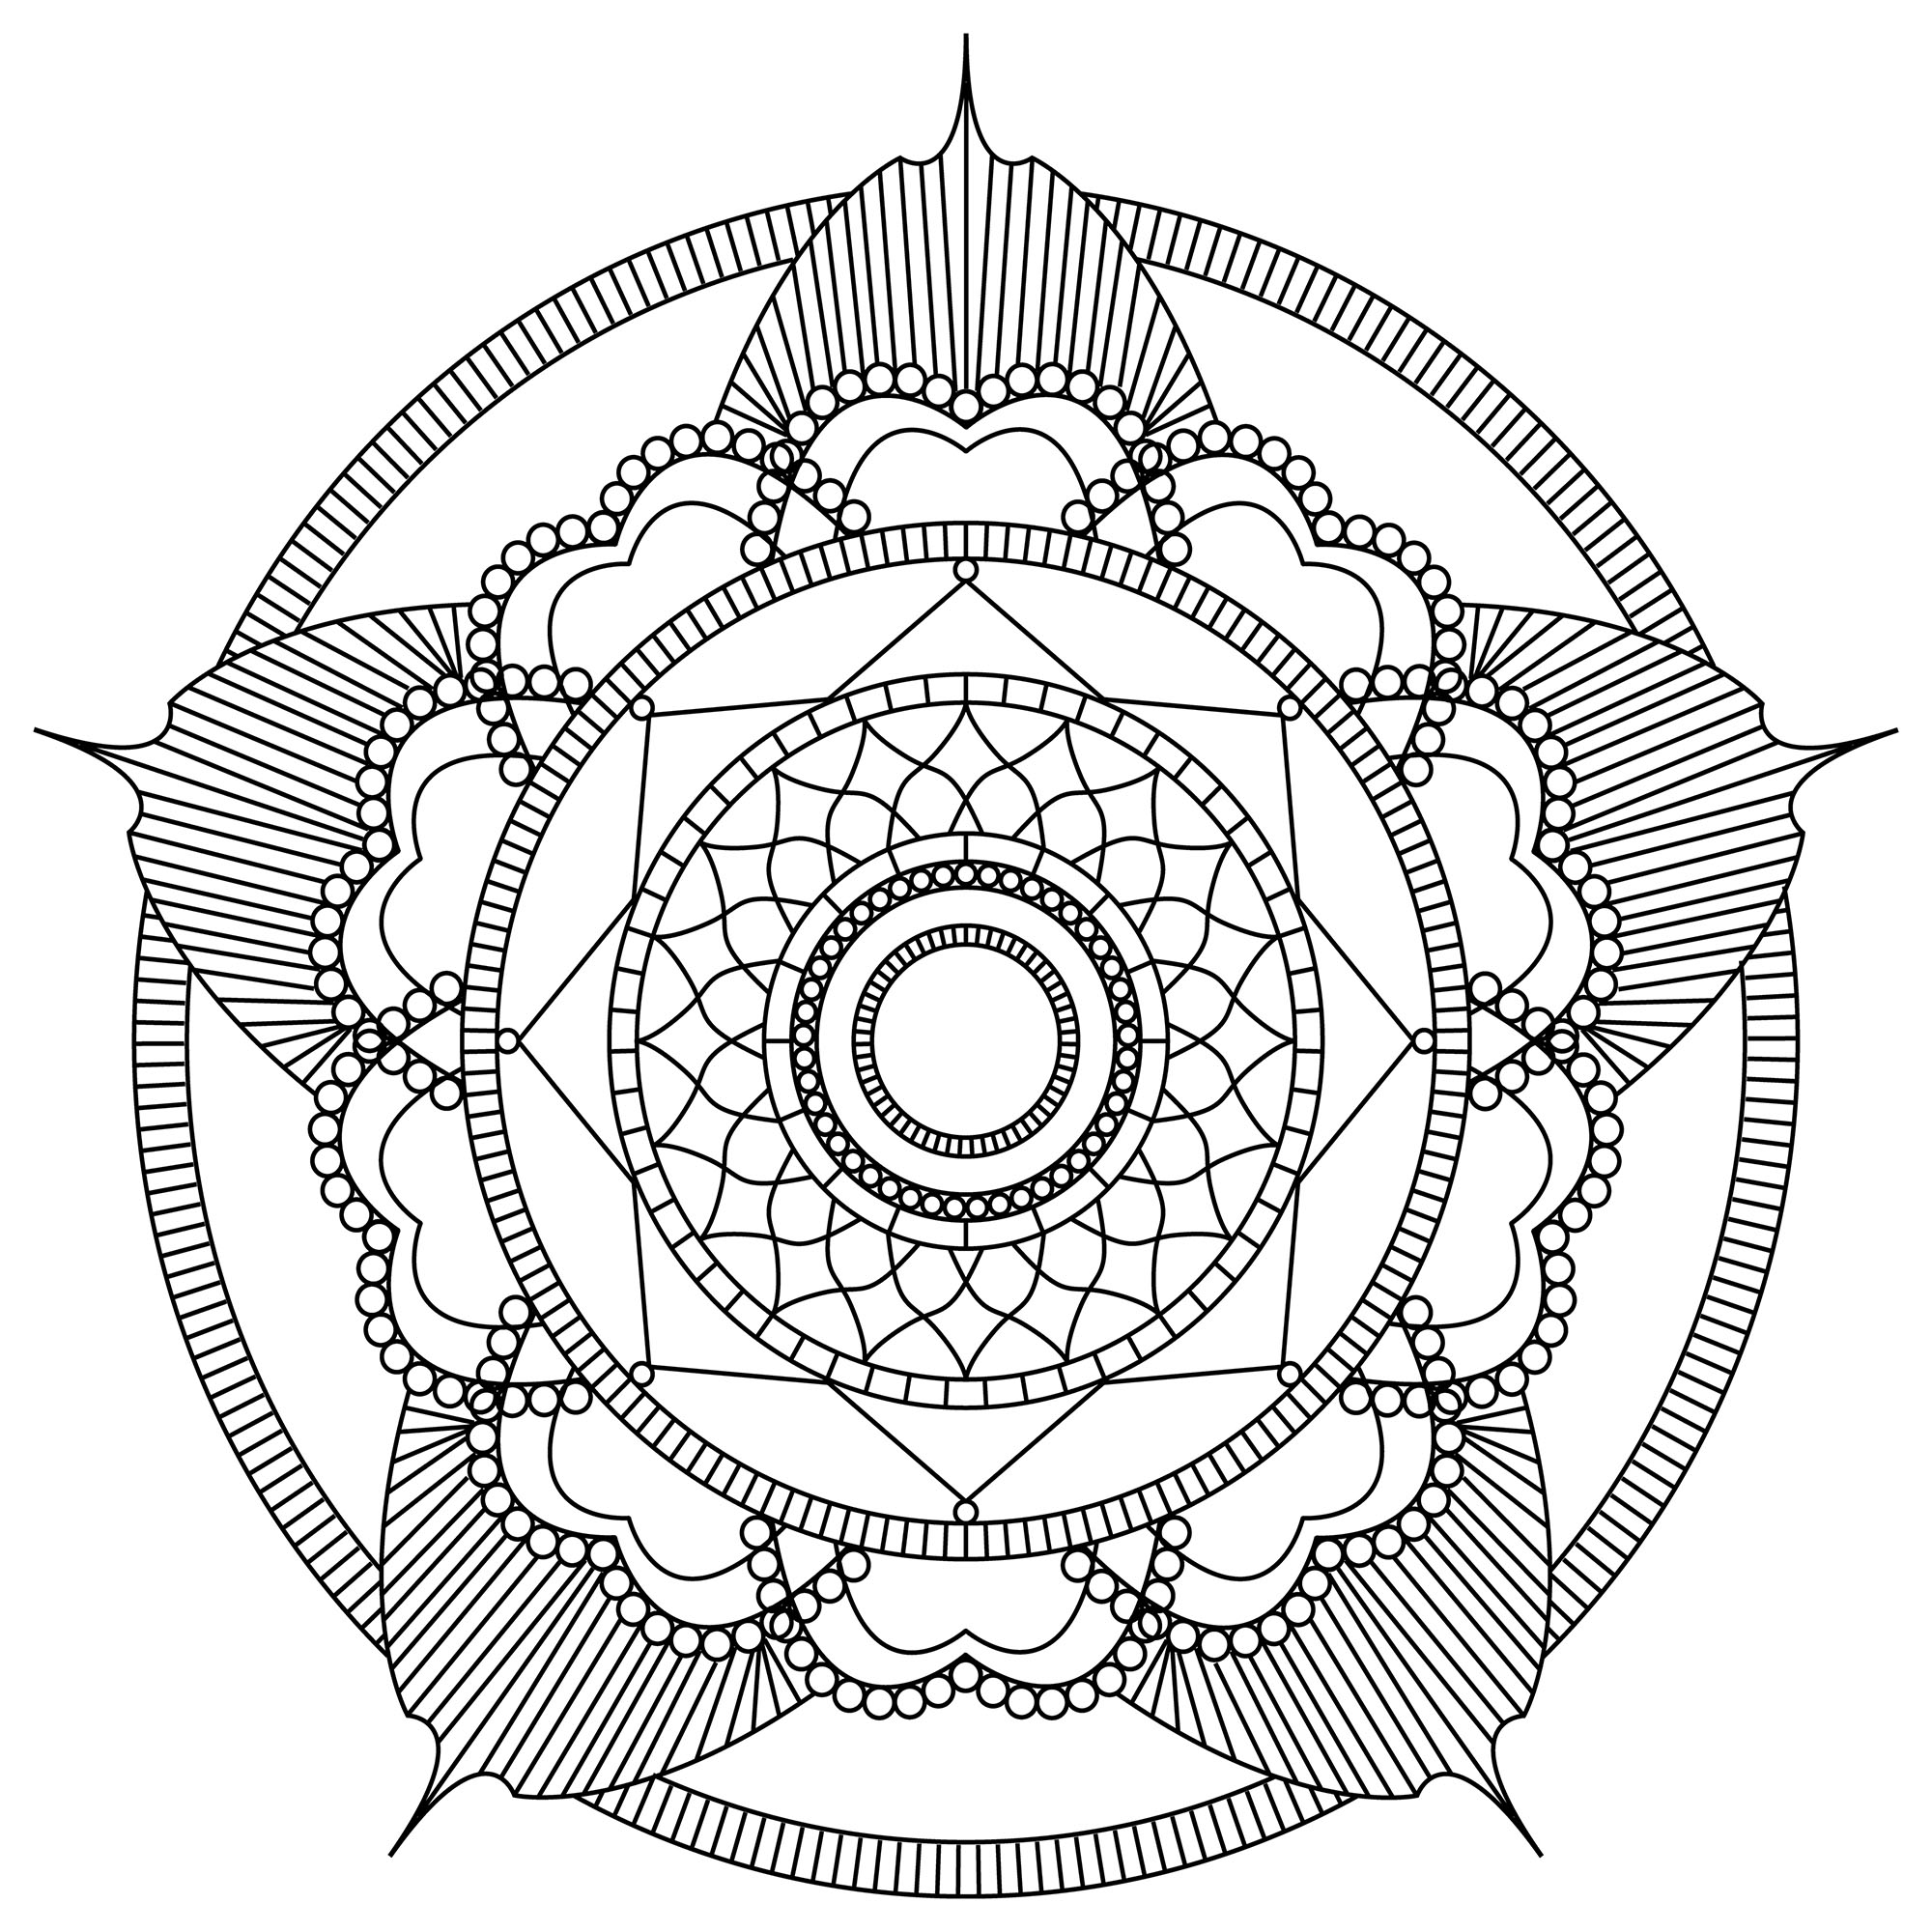 word mandala coloring pages anti stress mandala forming a flower zen anti stress word mandala coloring pages